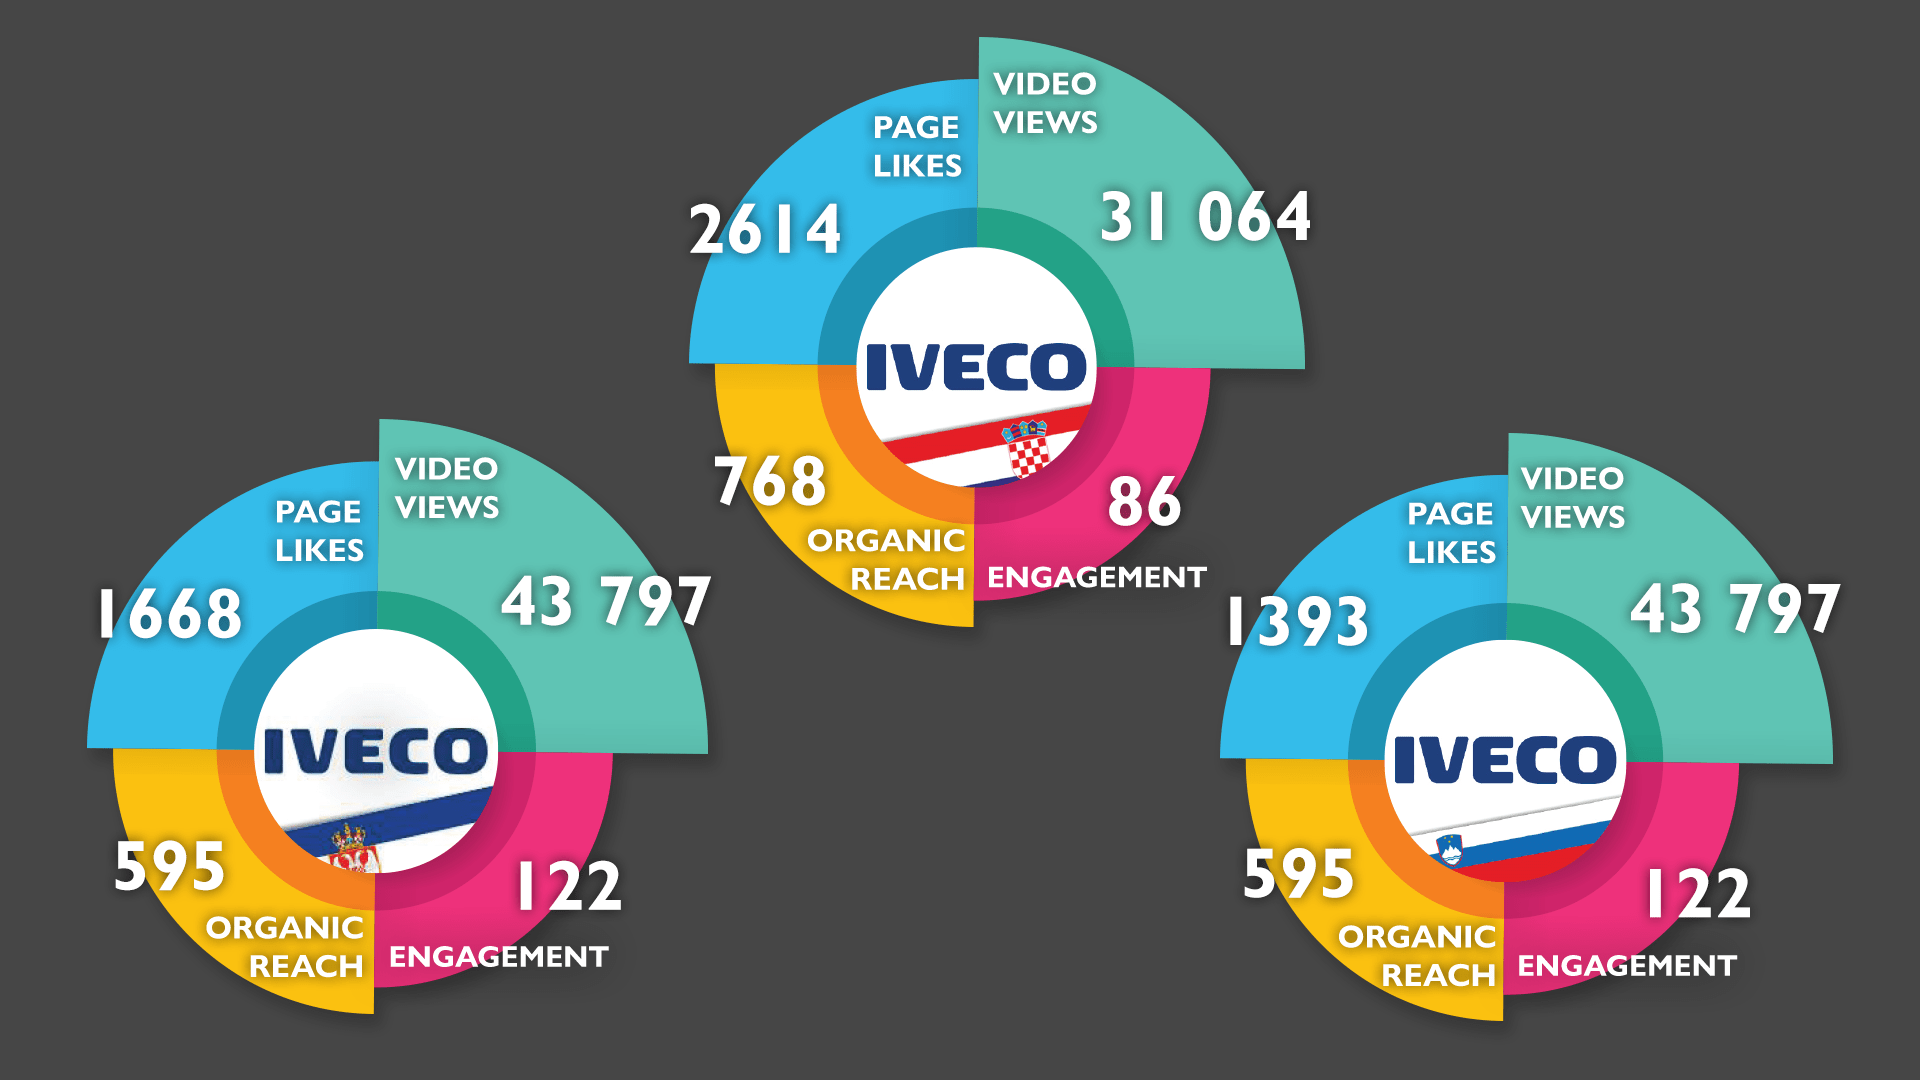 IVECO Pages Project results